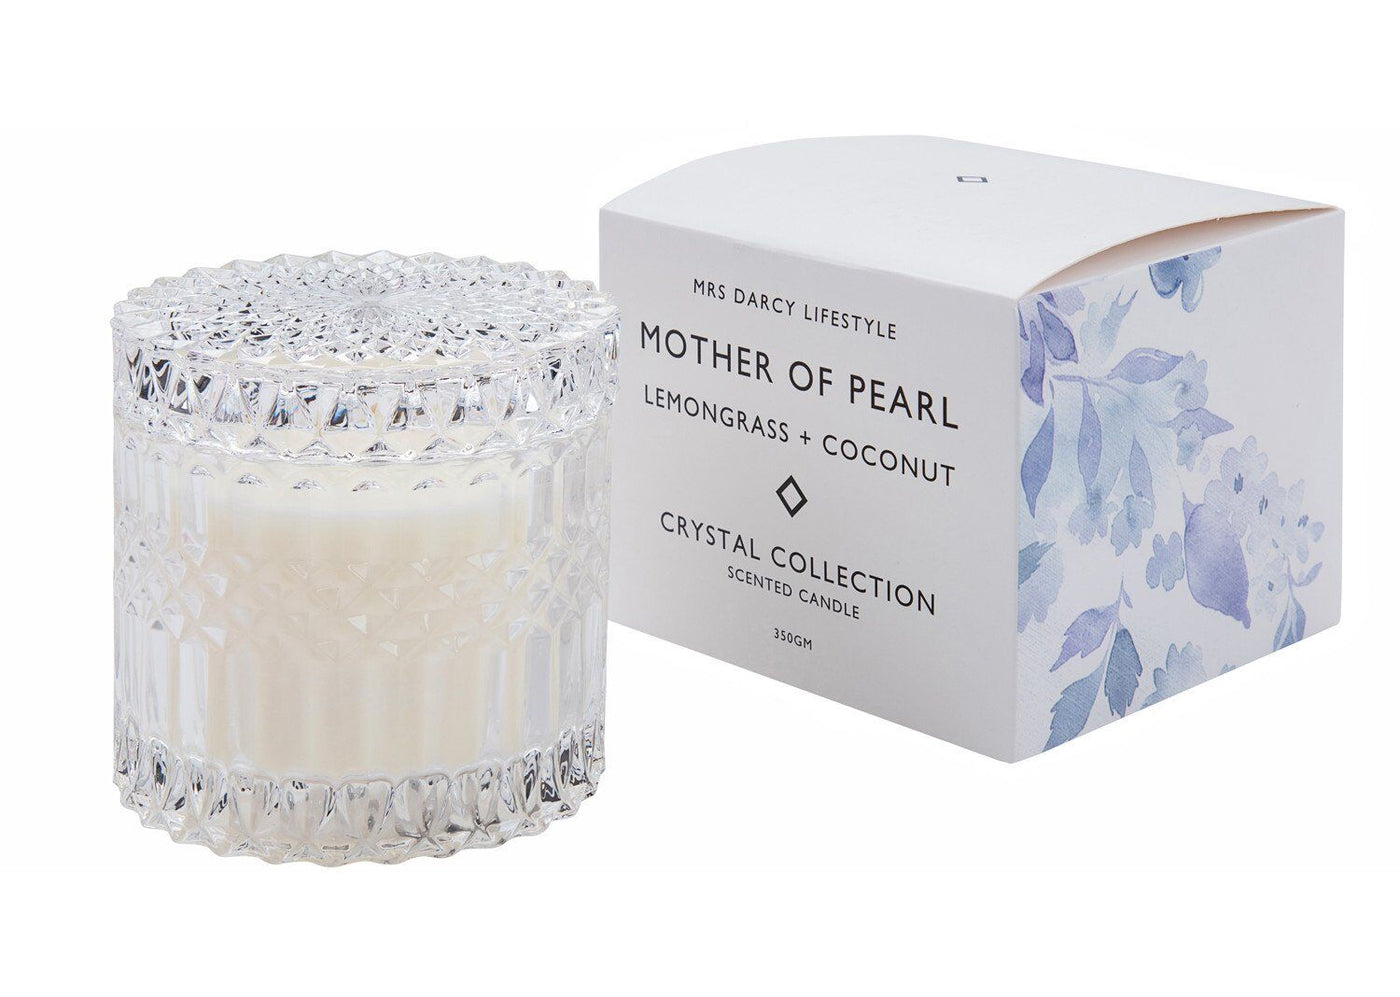 Mother Of Pearl - Lemongrass + Coconut